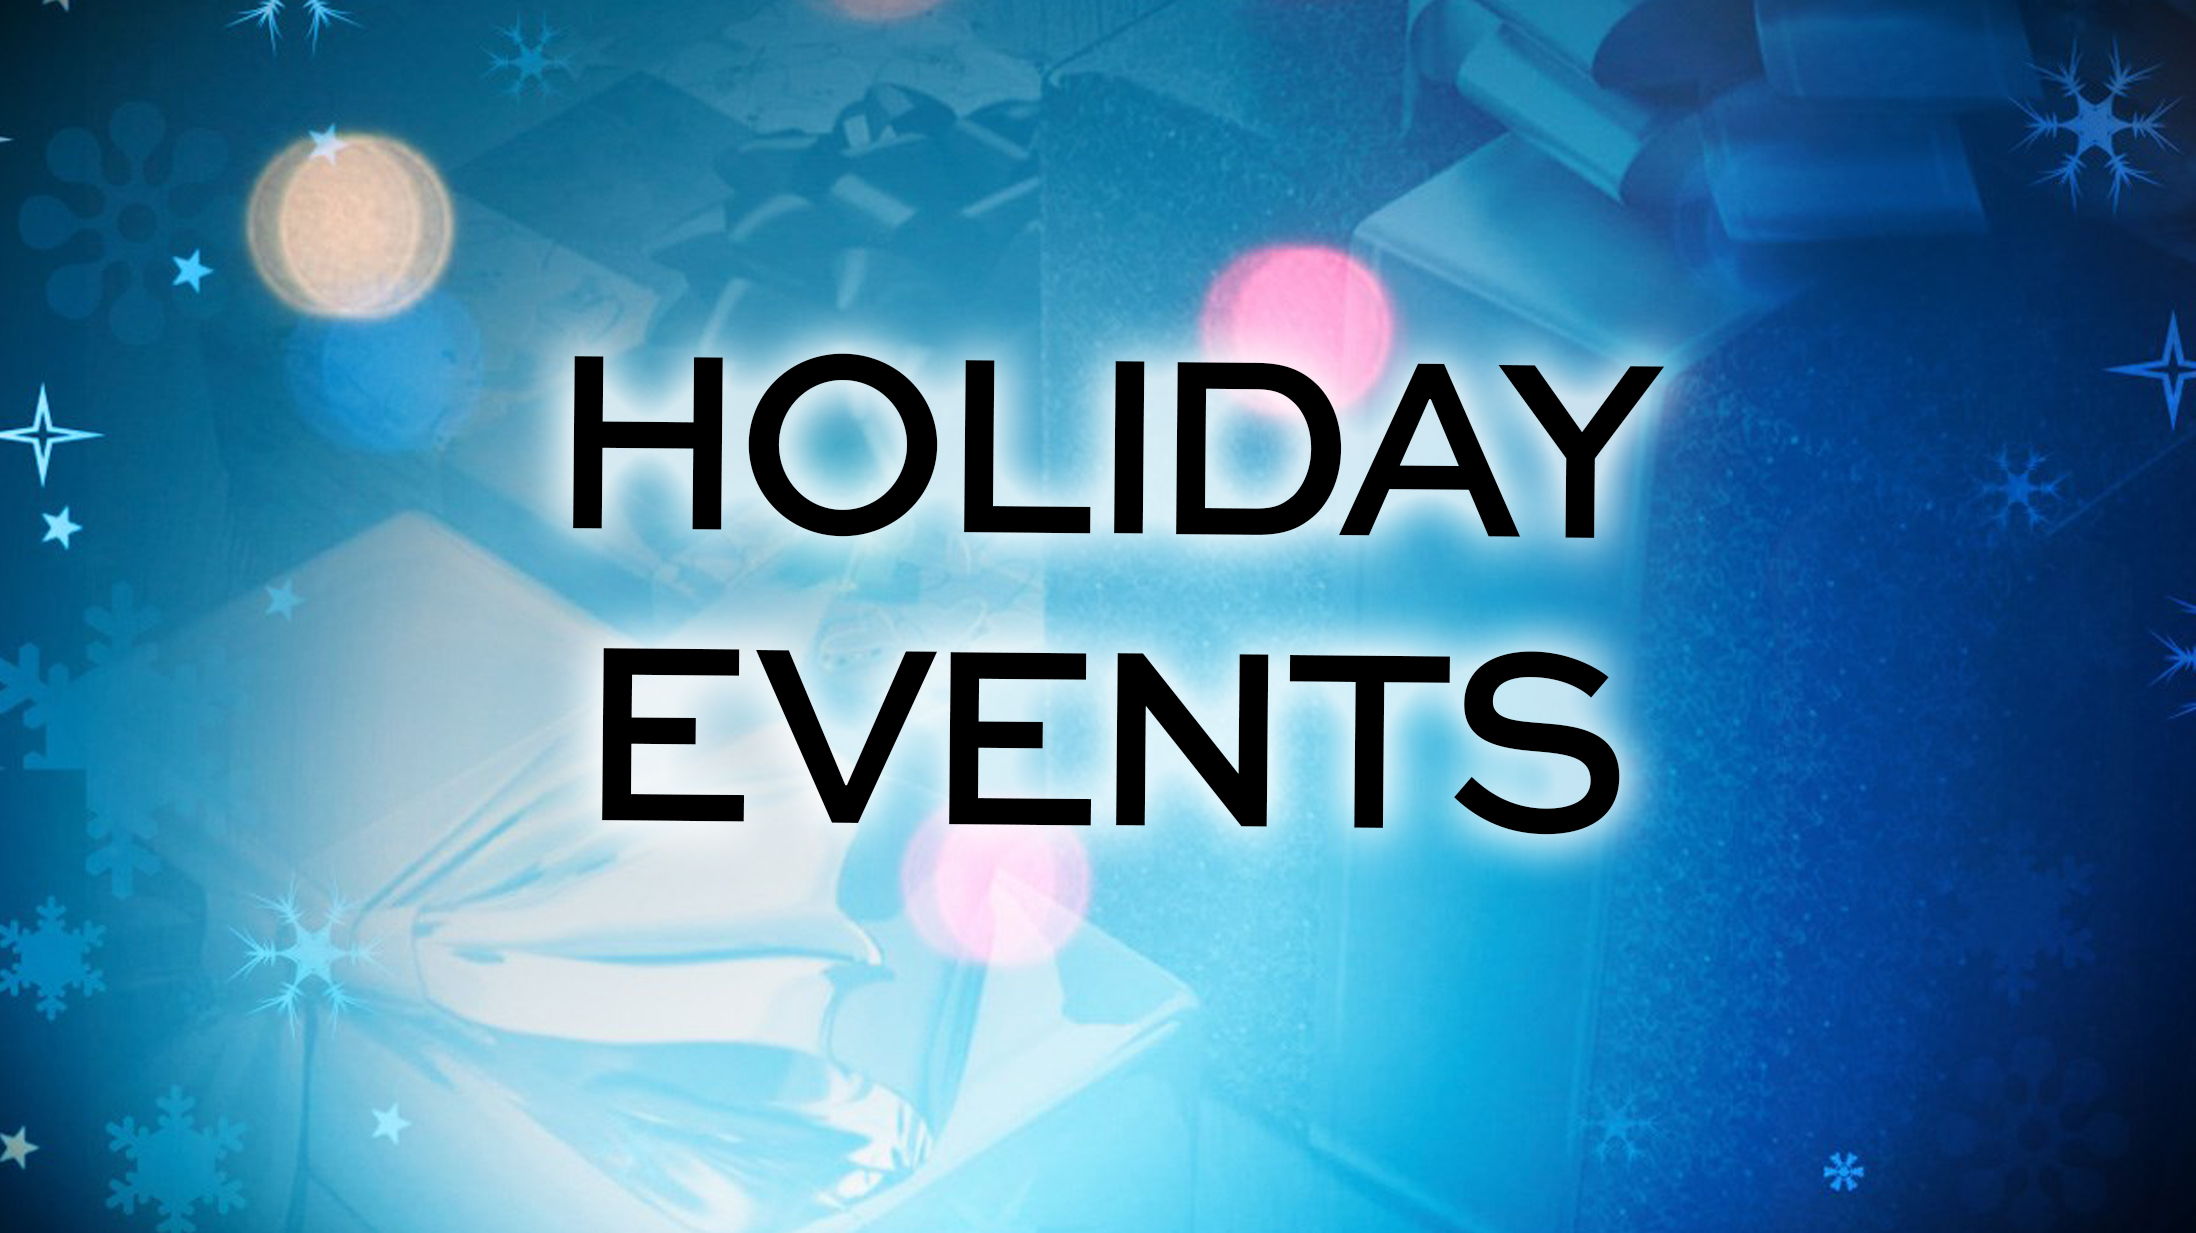 Holiday Events_1449273656544.jpg